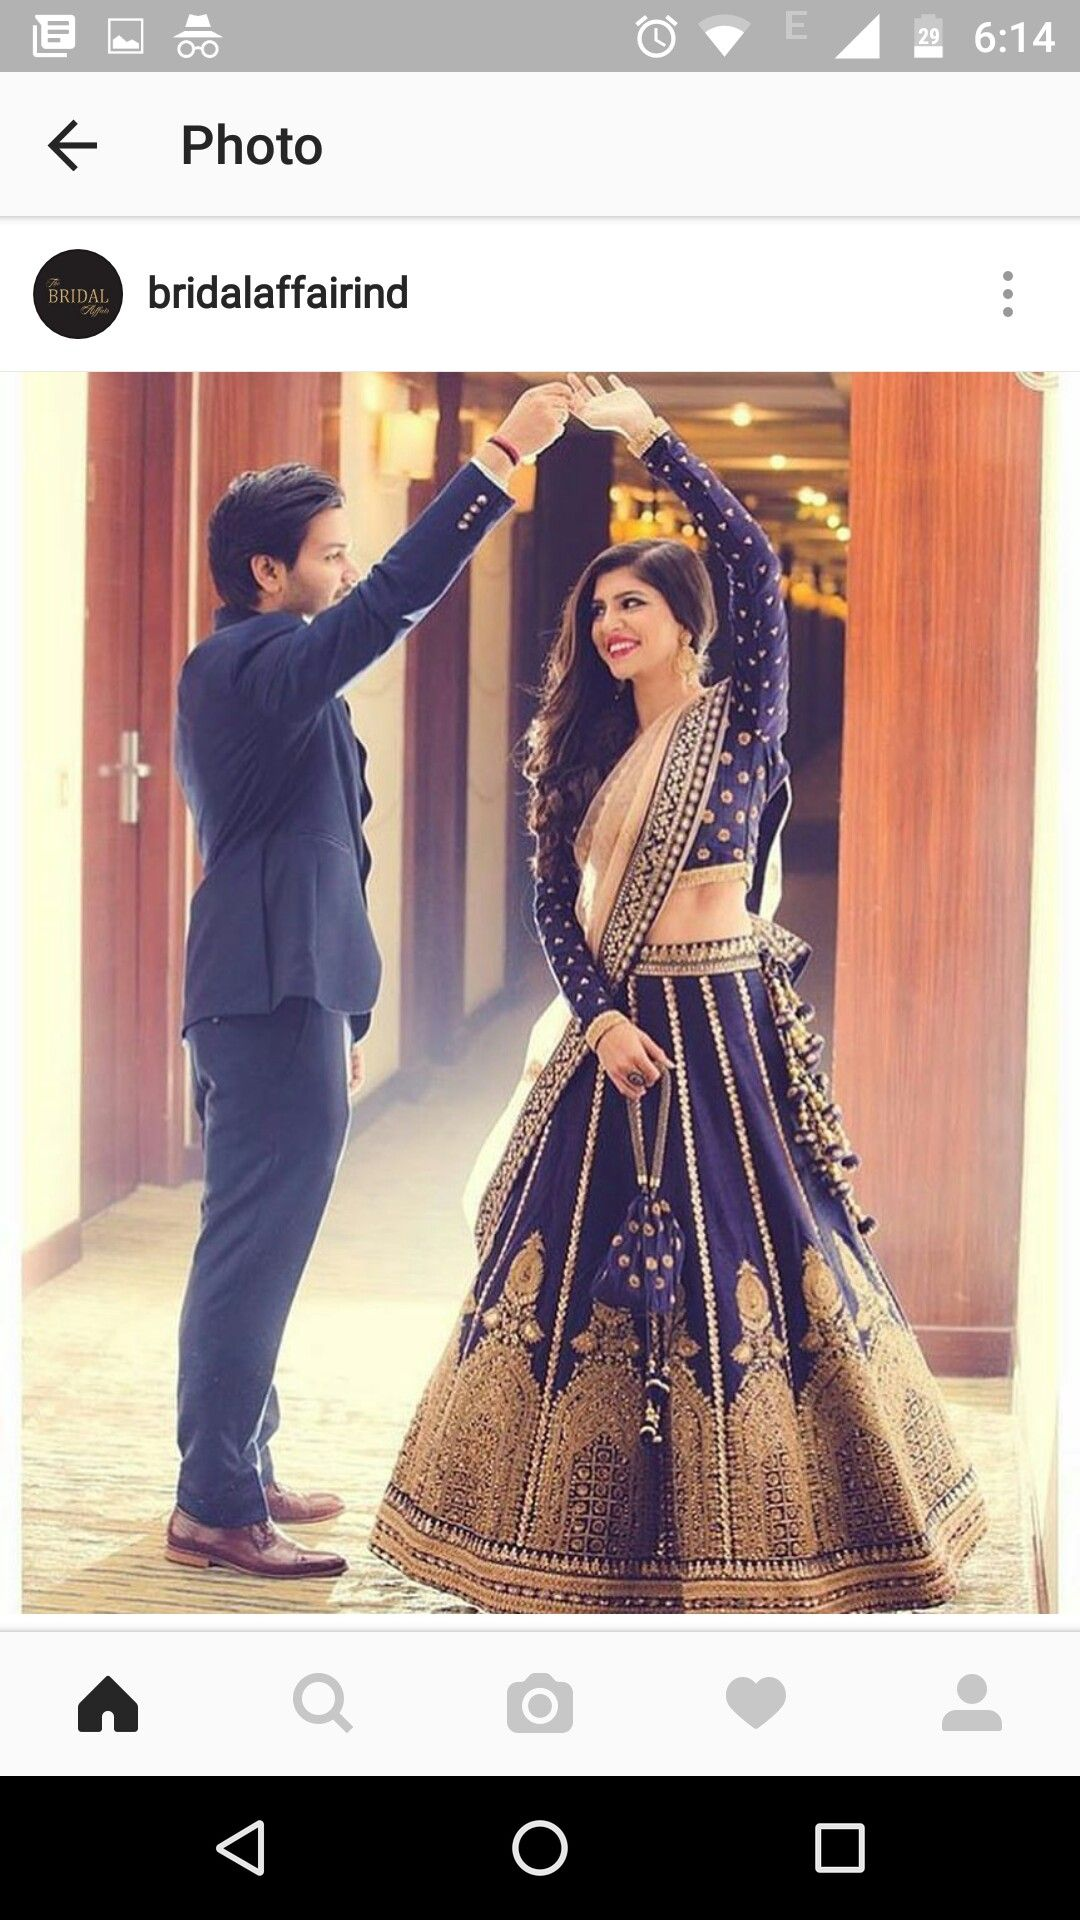 Pin by sanjana nadiwade on wedding dress pinterest wedding card